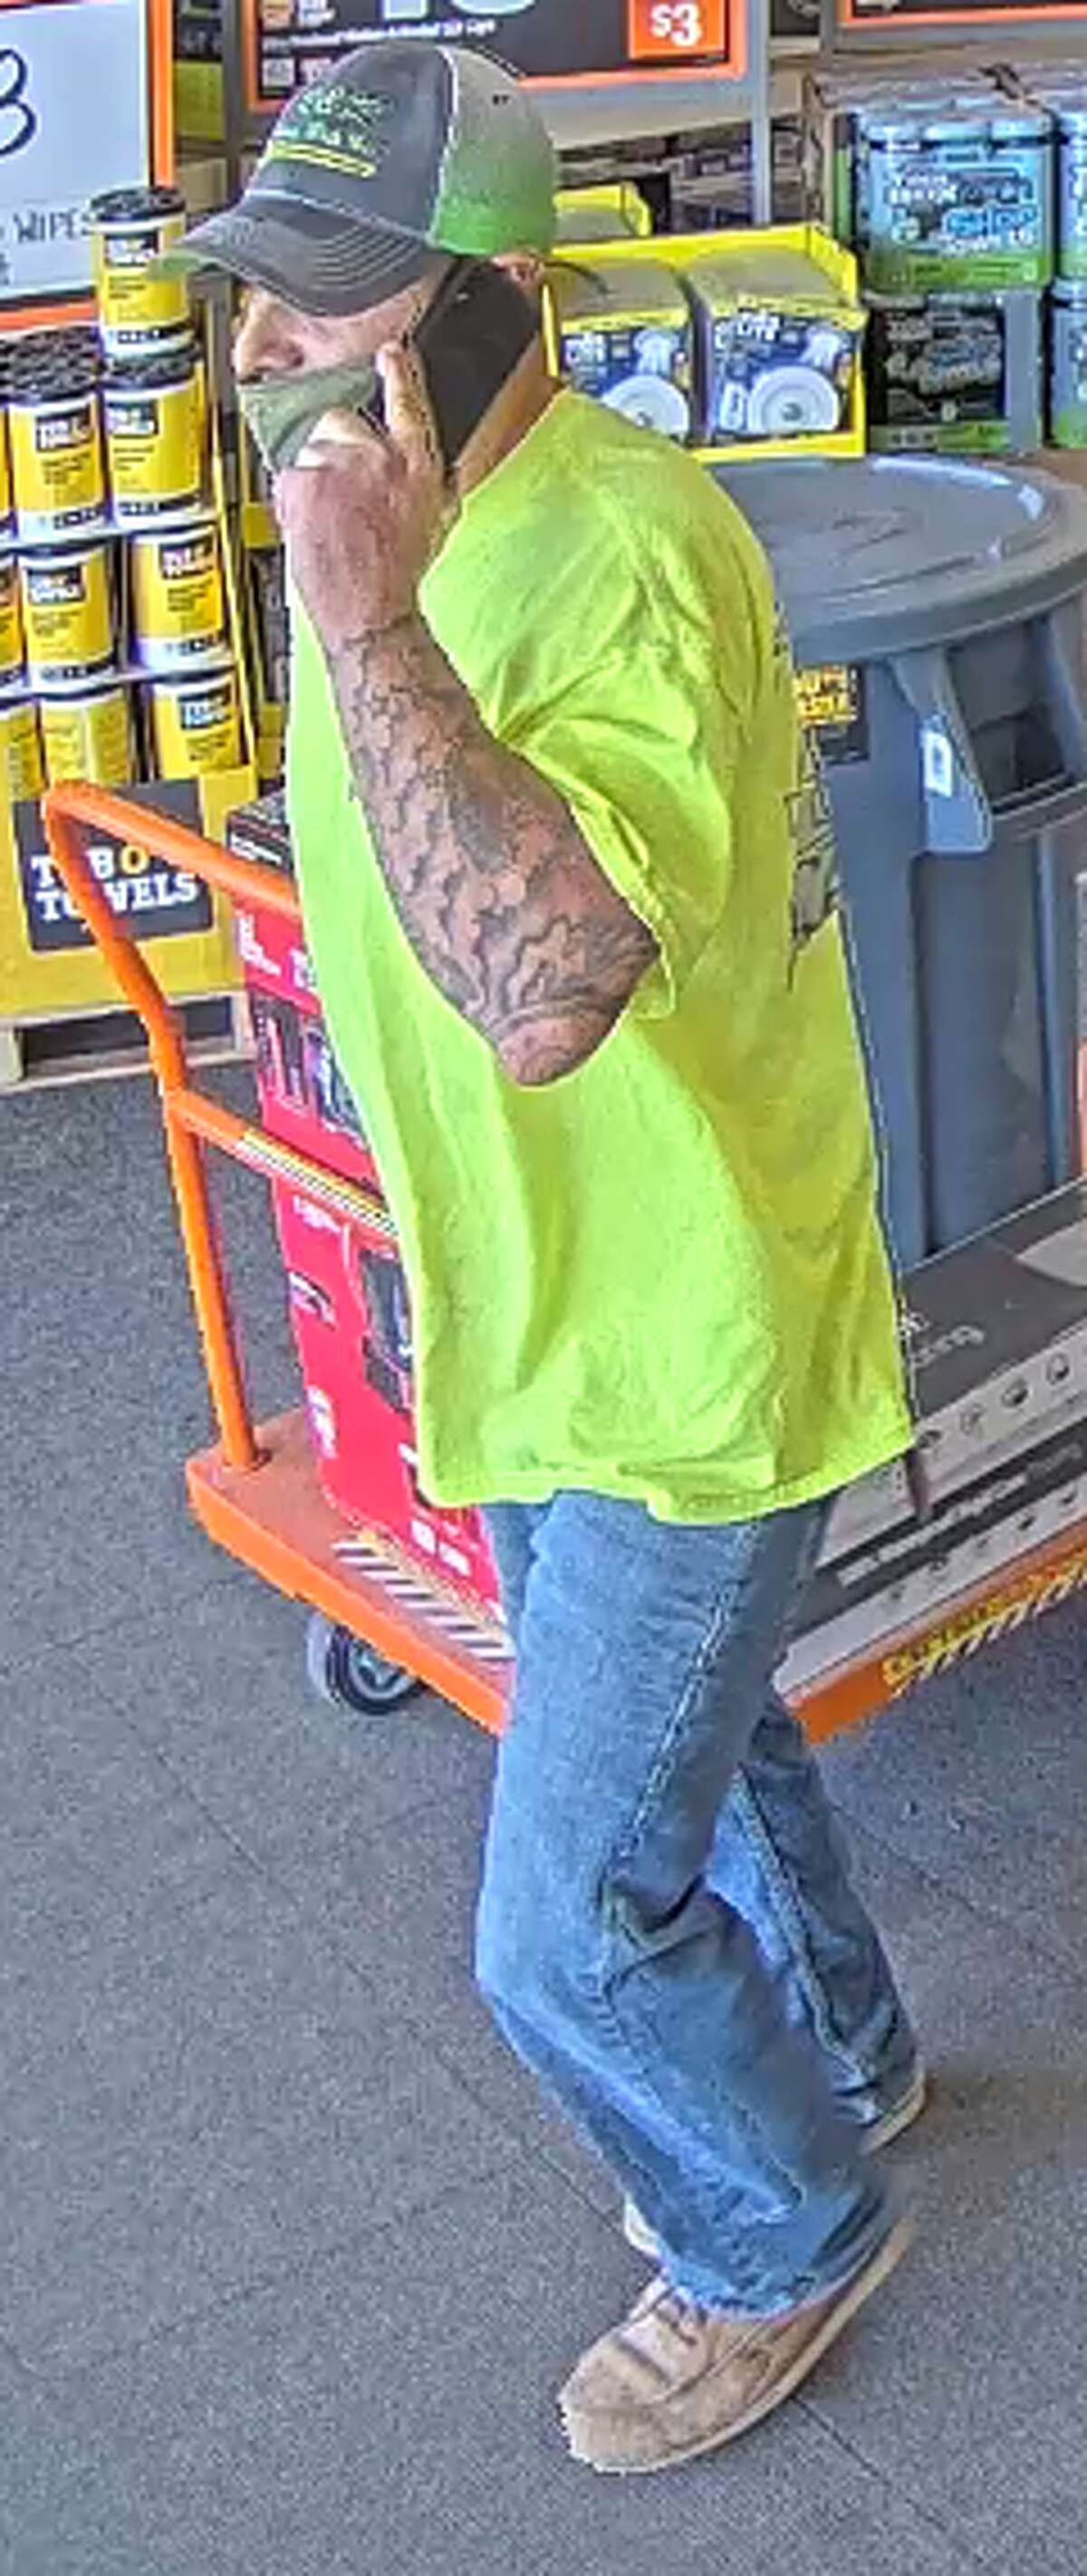 Police are still looking for this larceny suspect.